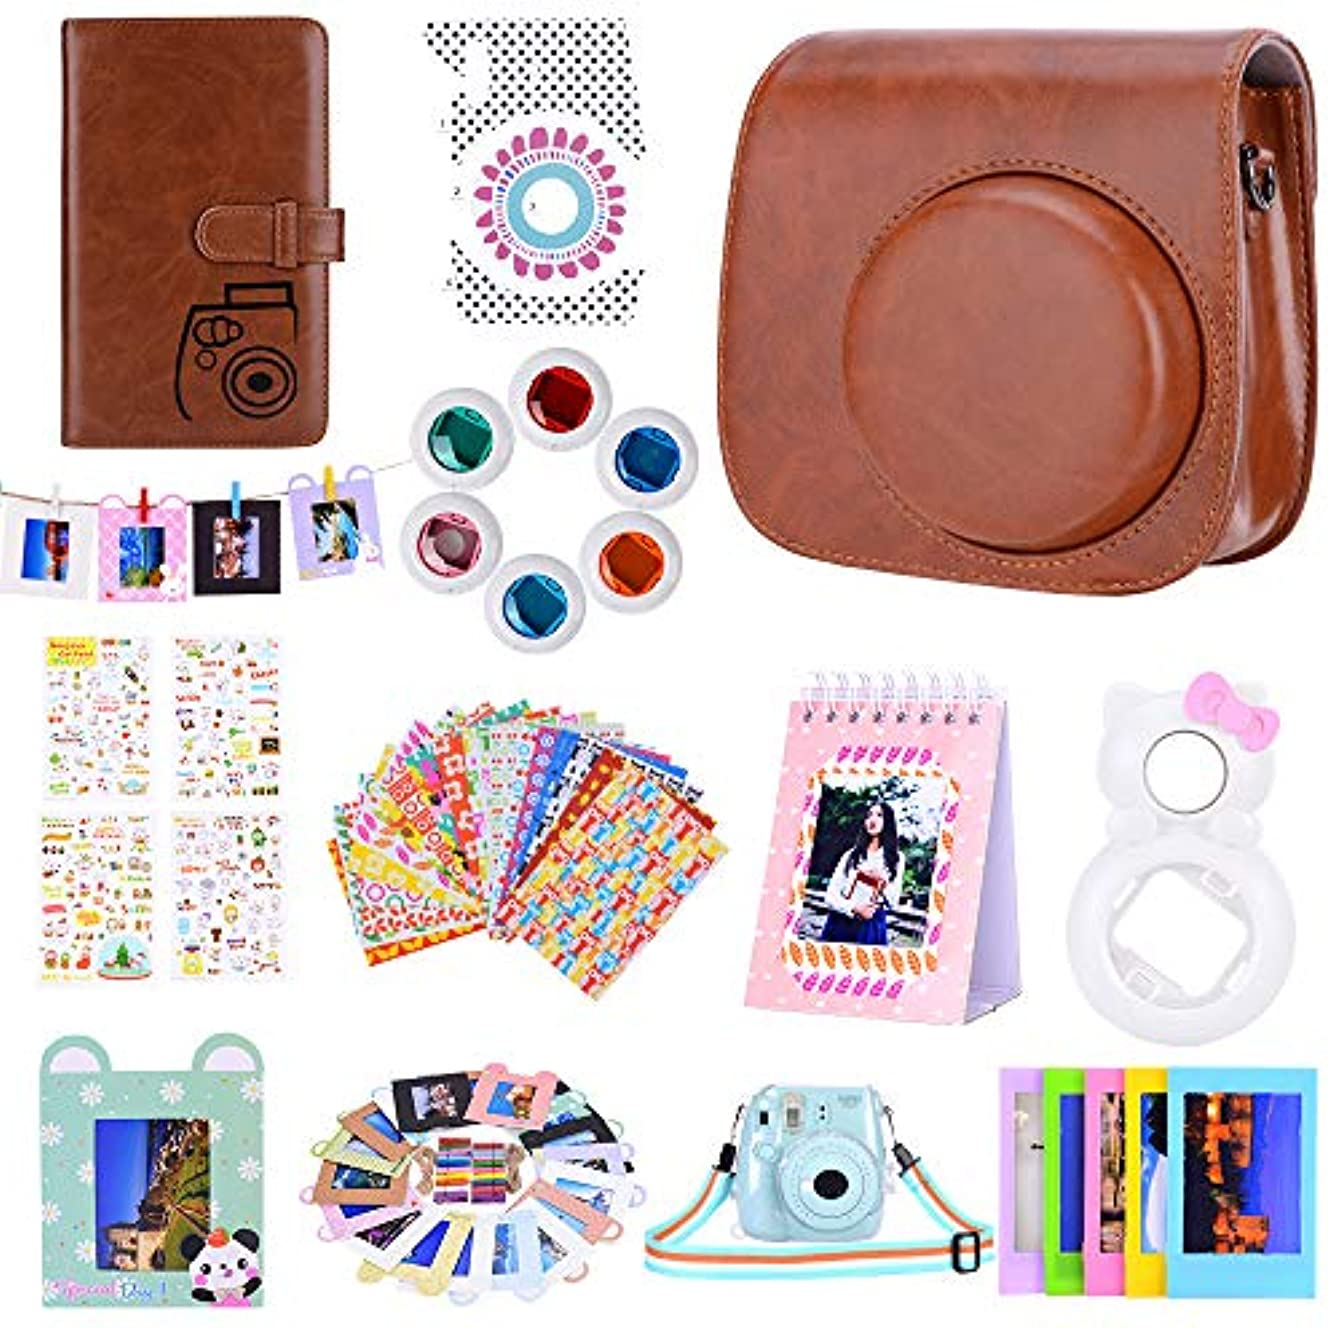 Bsuuy Instax Mini 9 Camera Accessories for FujiFilm Instax Mini 9 8 8+ Camera with Mini 9 Case/Album/Selfie Lens/Filters/Wall Hang Frames/Camera Sticker/Shoulder Strap (12 in 1 Brown)